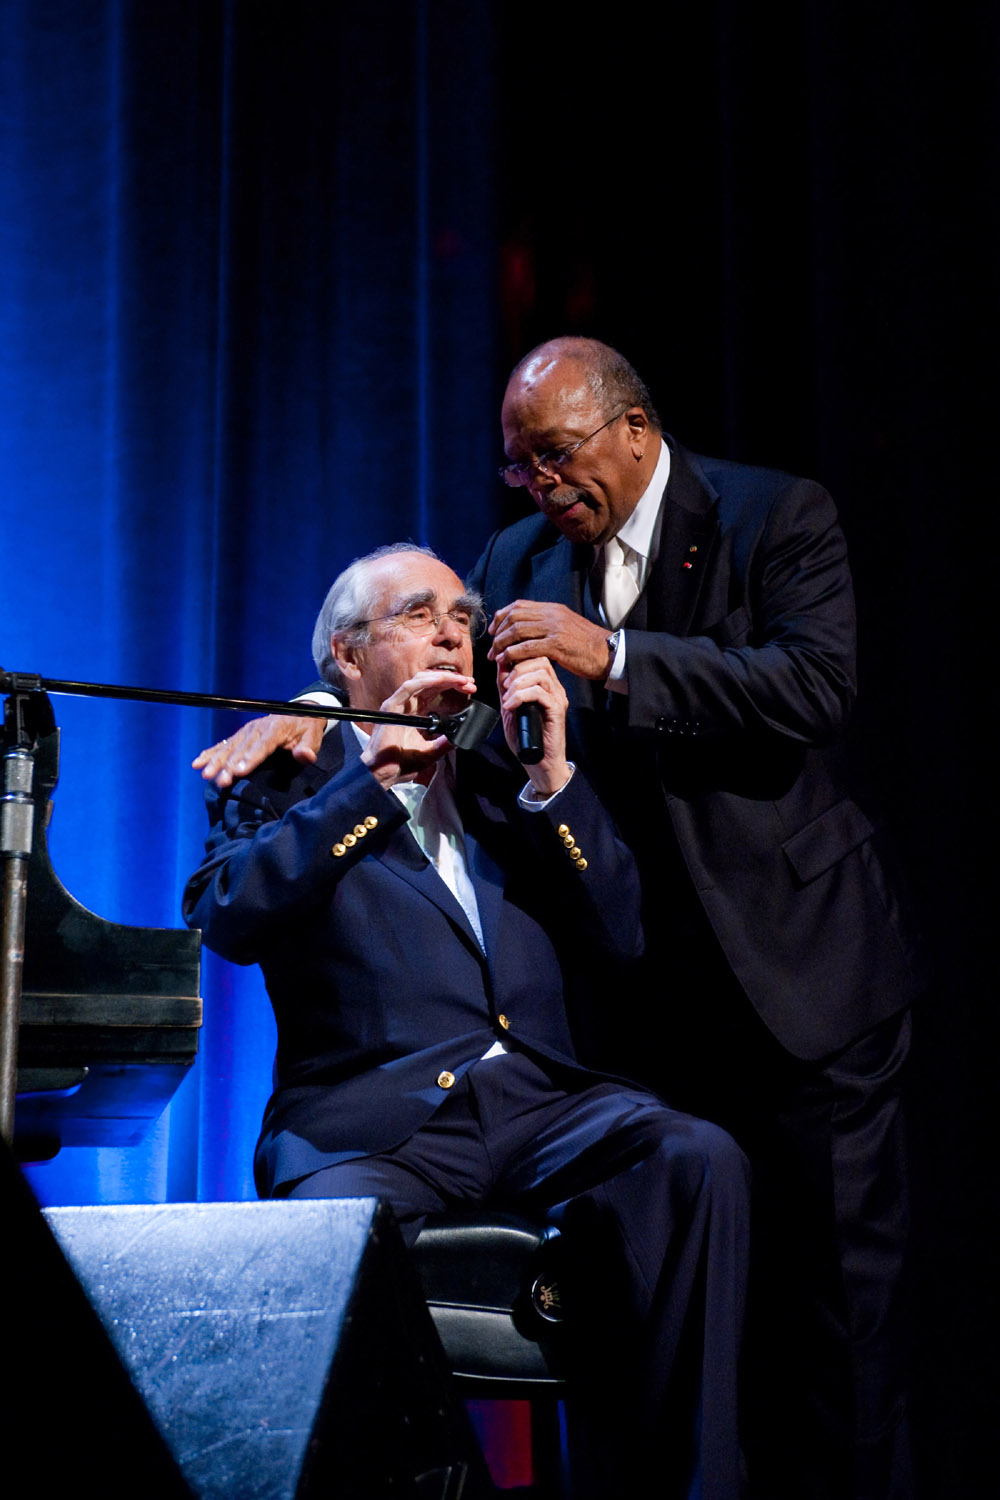 Michel Legrand Quincy Jones